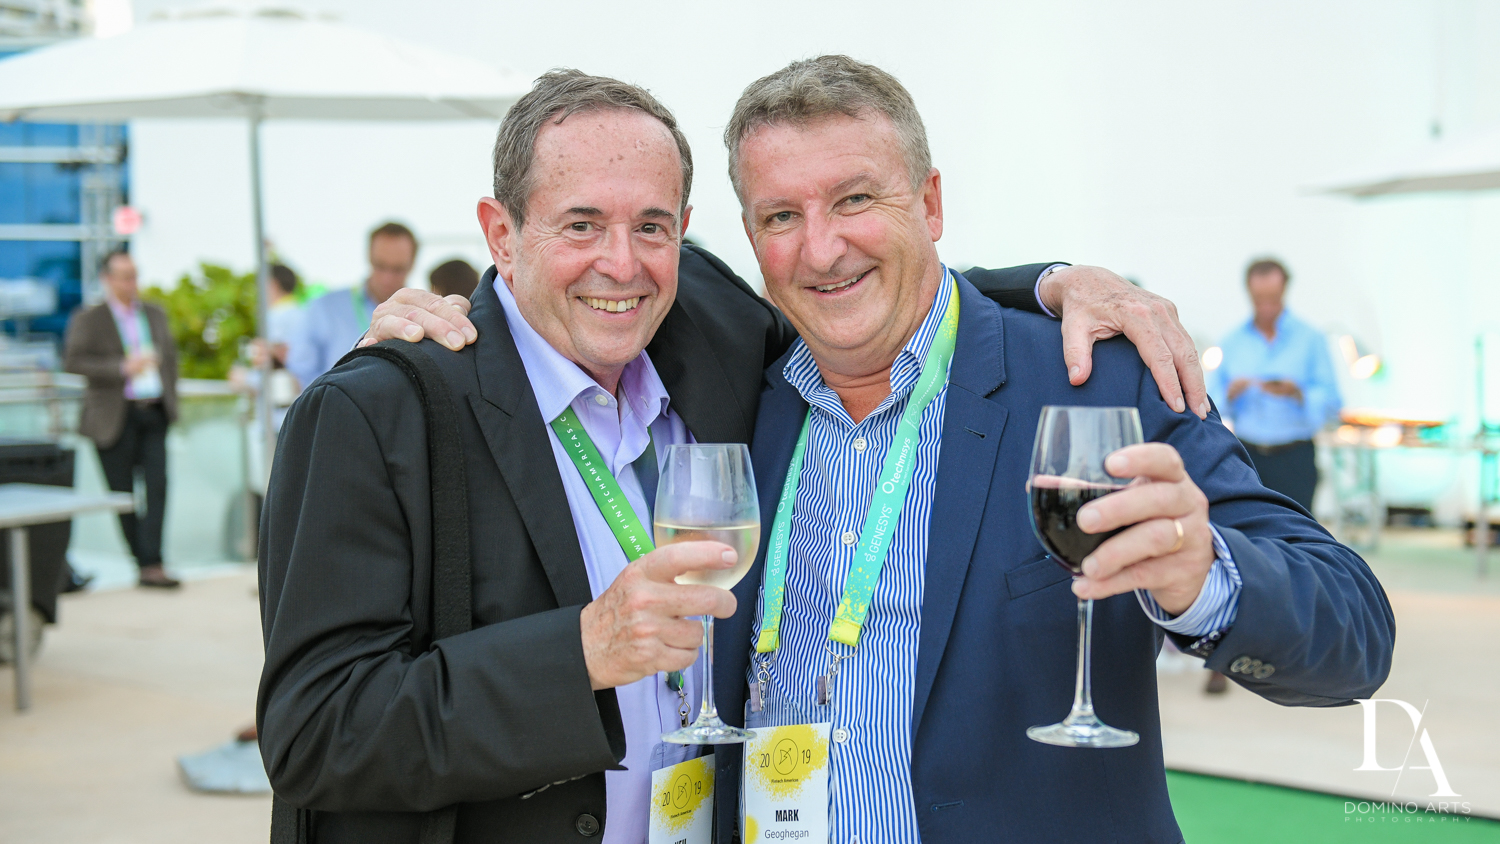 celebration at Fintech Americas Banking Conference Miami by Domino Arts Photography